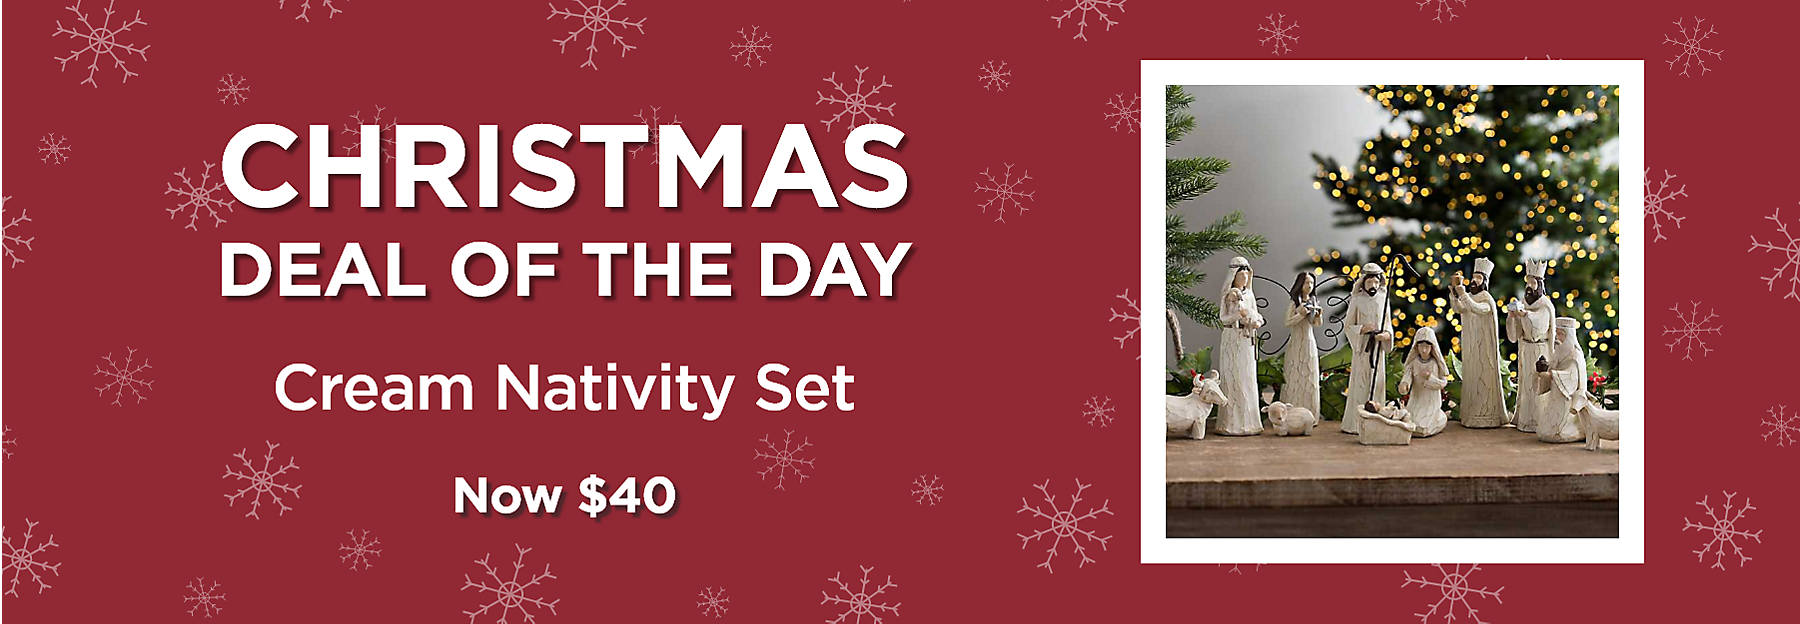 Christmas Deal of the Day Cream Nativity Set Now $40